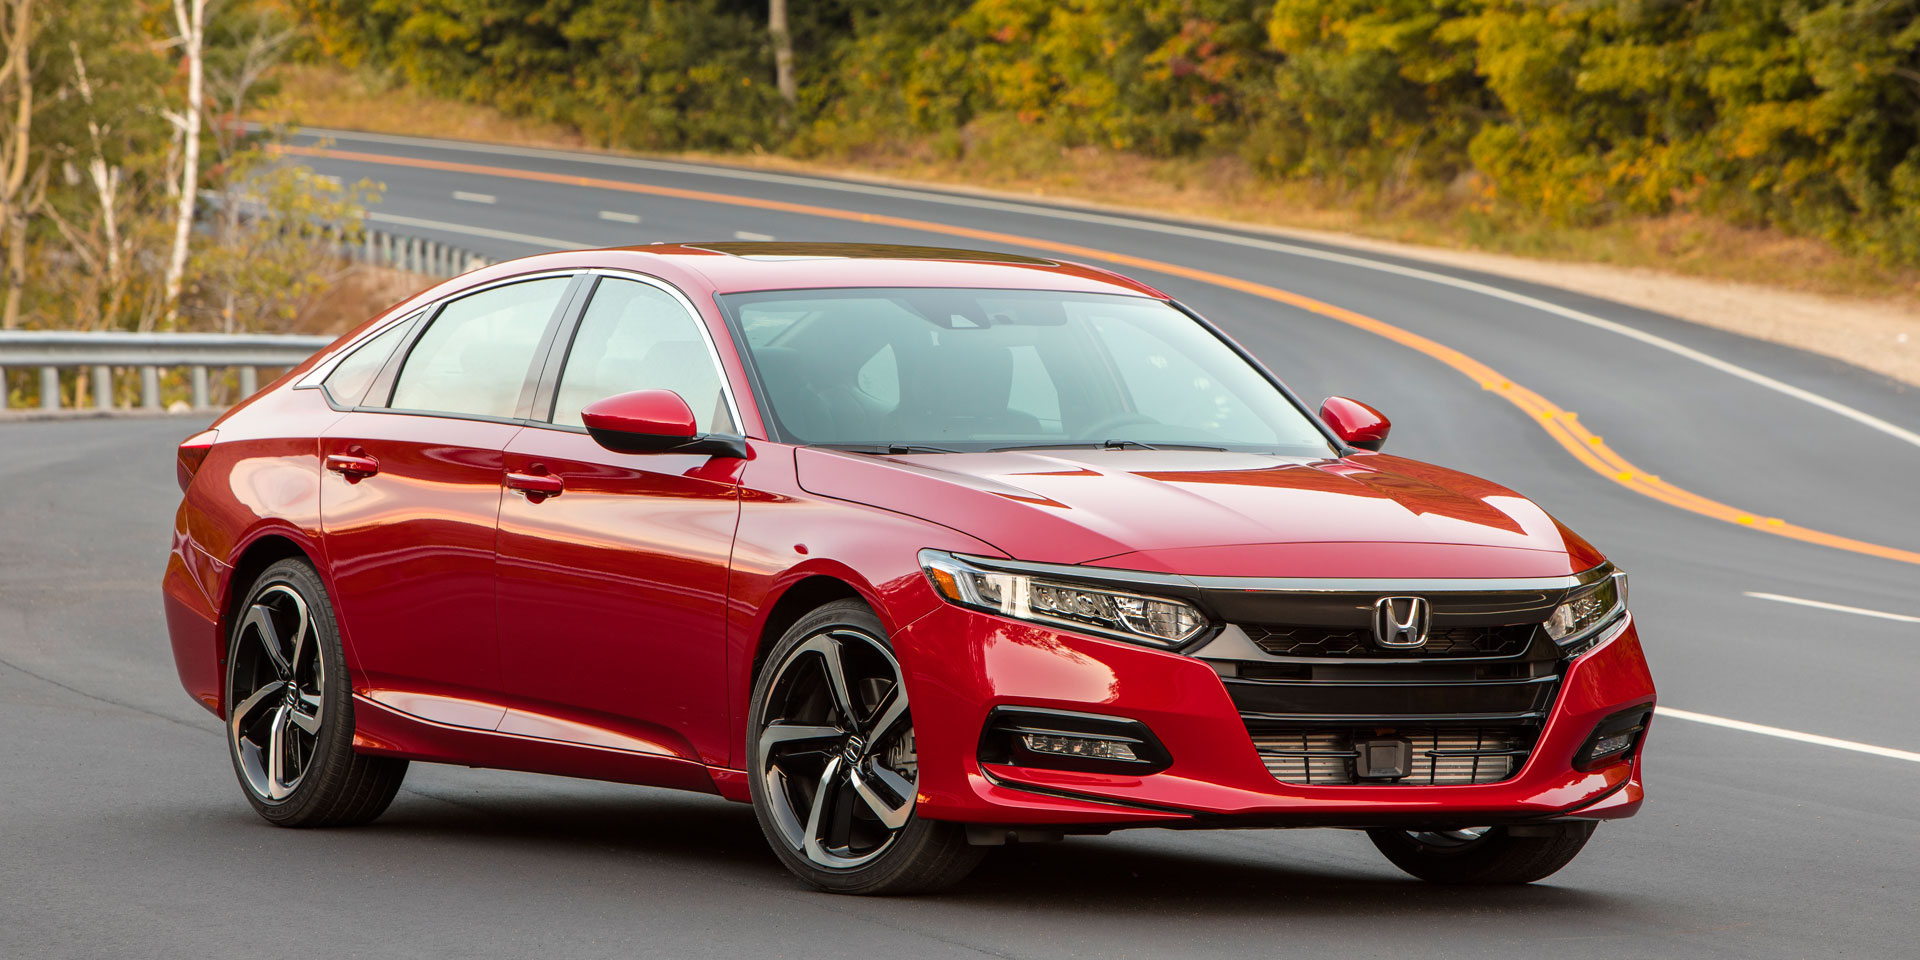 2017 Honda Accord Sedan Configurations >> Honda Accord 2018 Configurations | Motavera.com